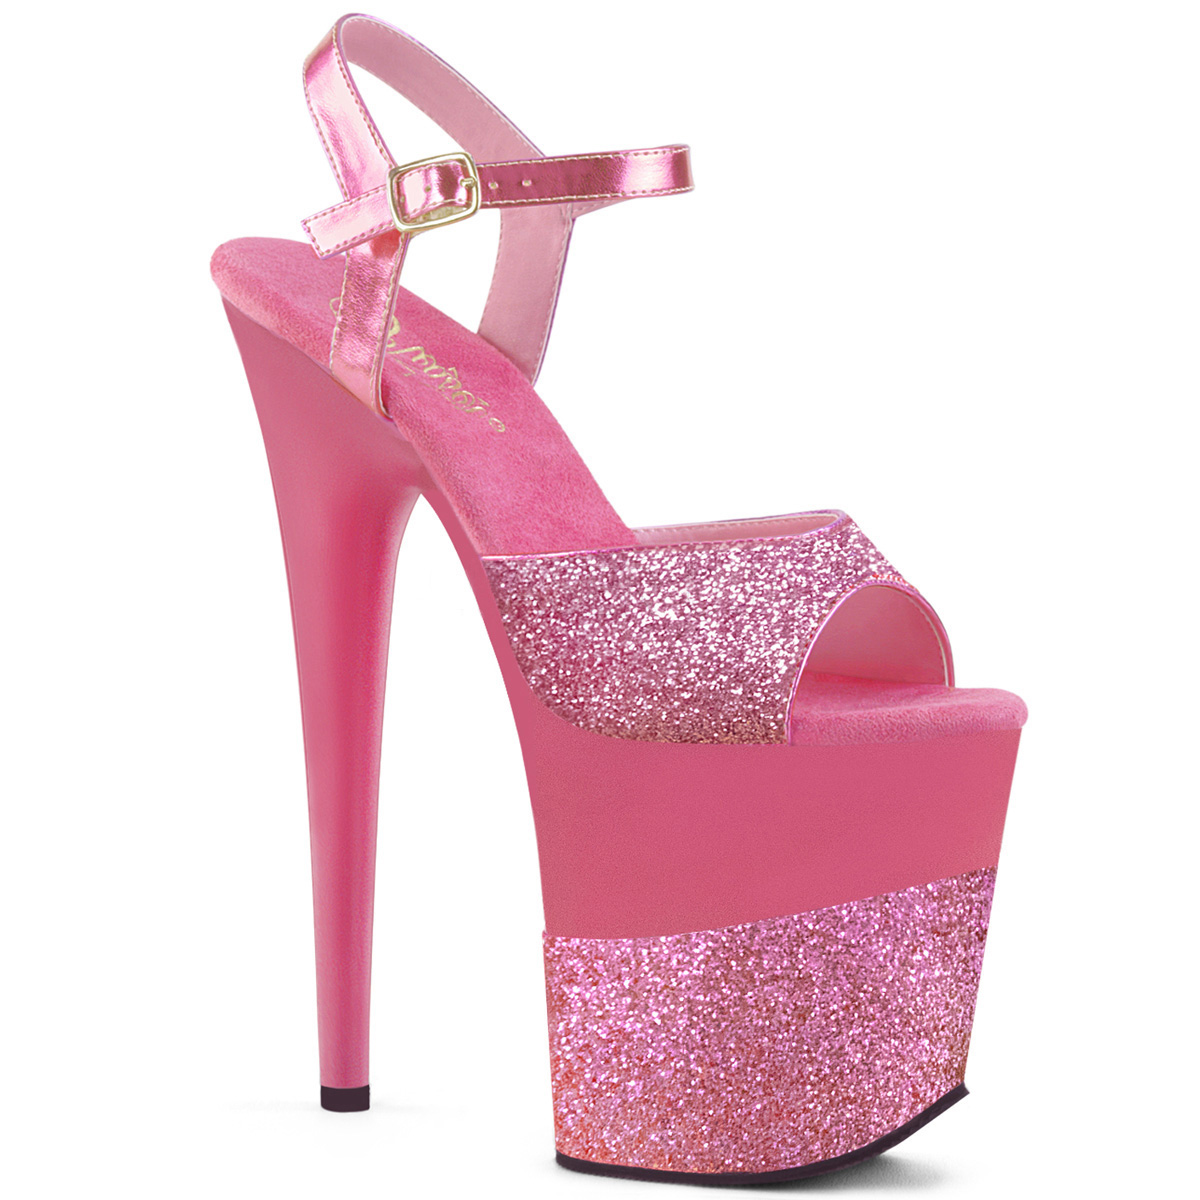 395bad00f8a Extreme High Heels FLAMINGO-809-2G - Pink